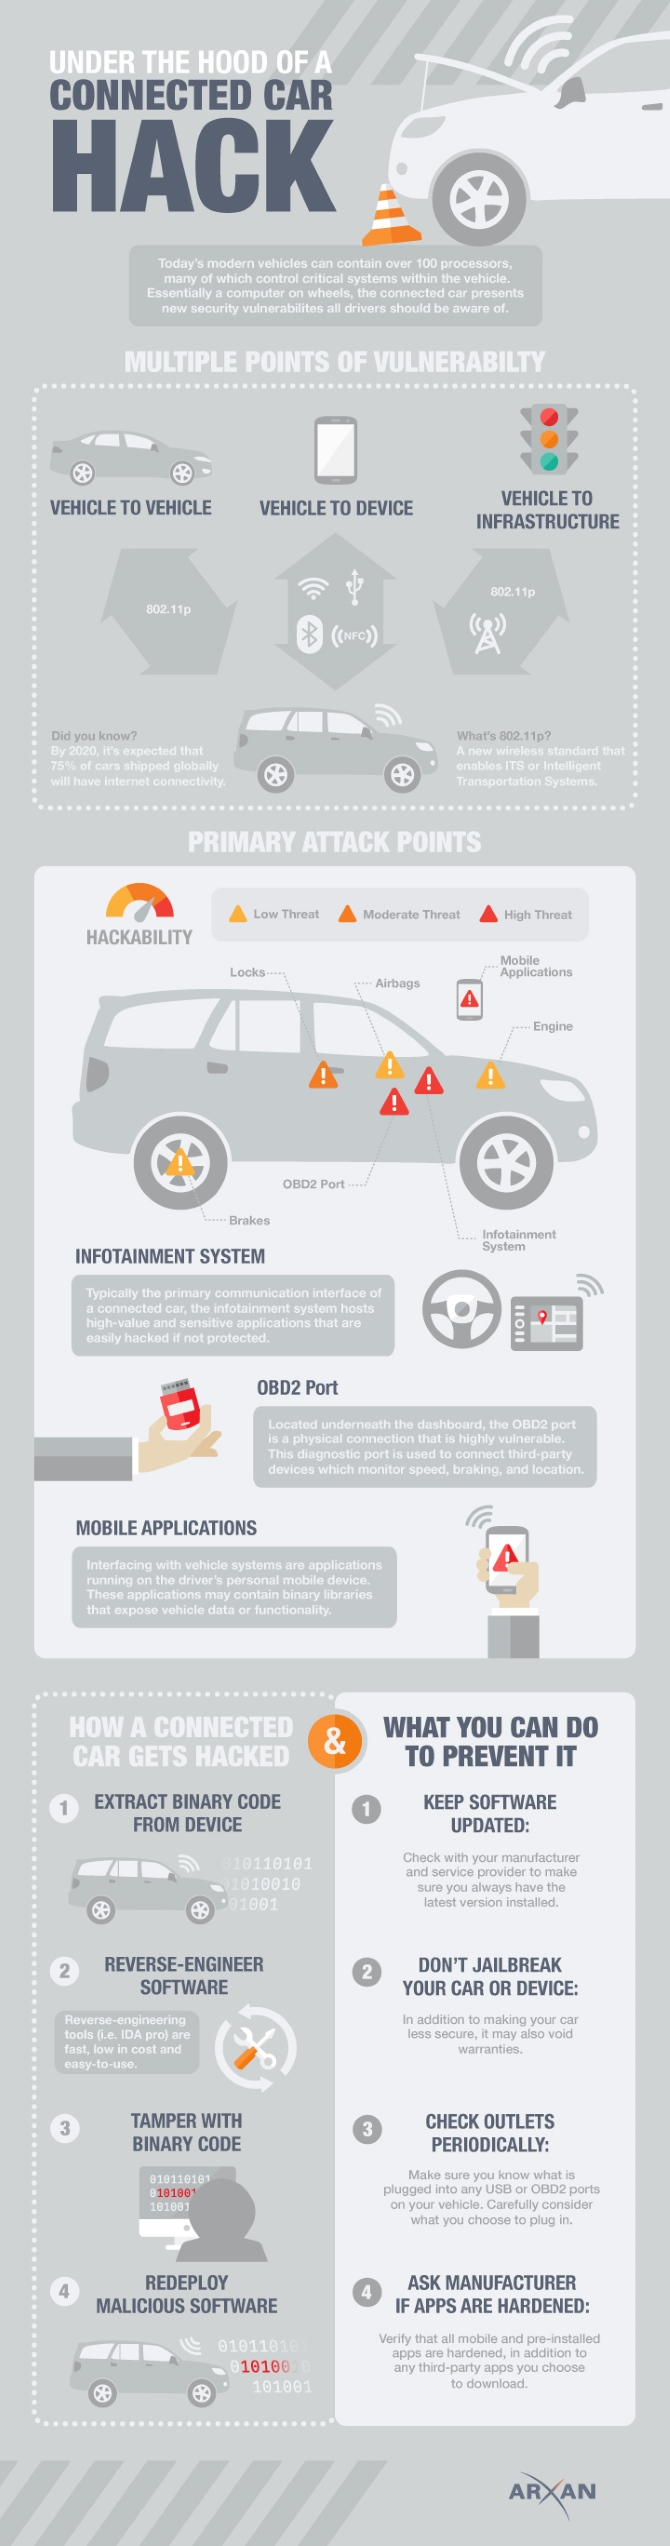 how-car-hack-attacks-are-happening-infographic-large